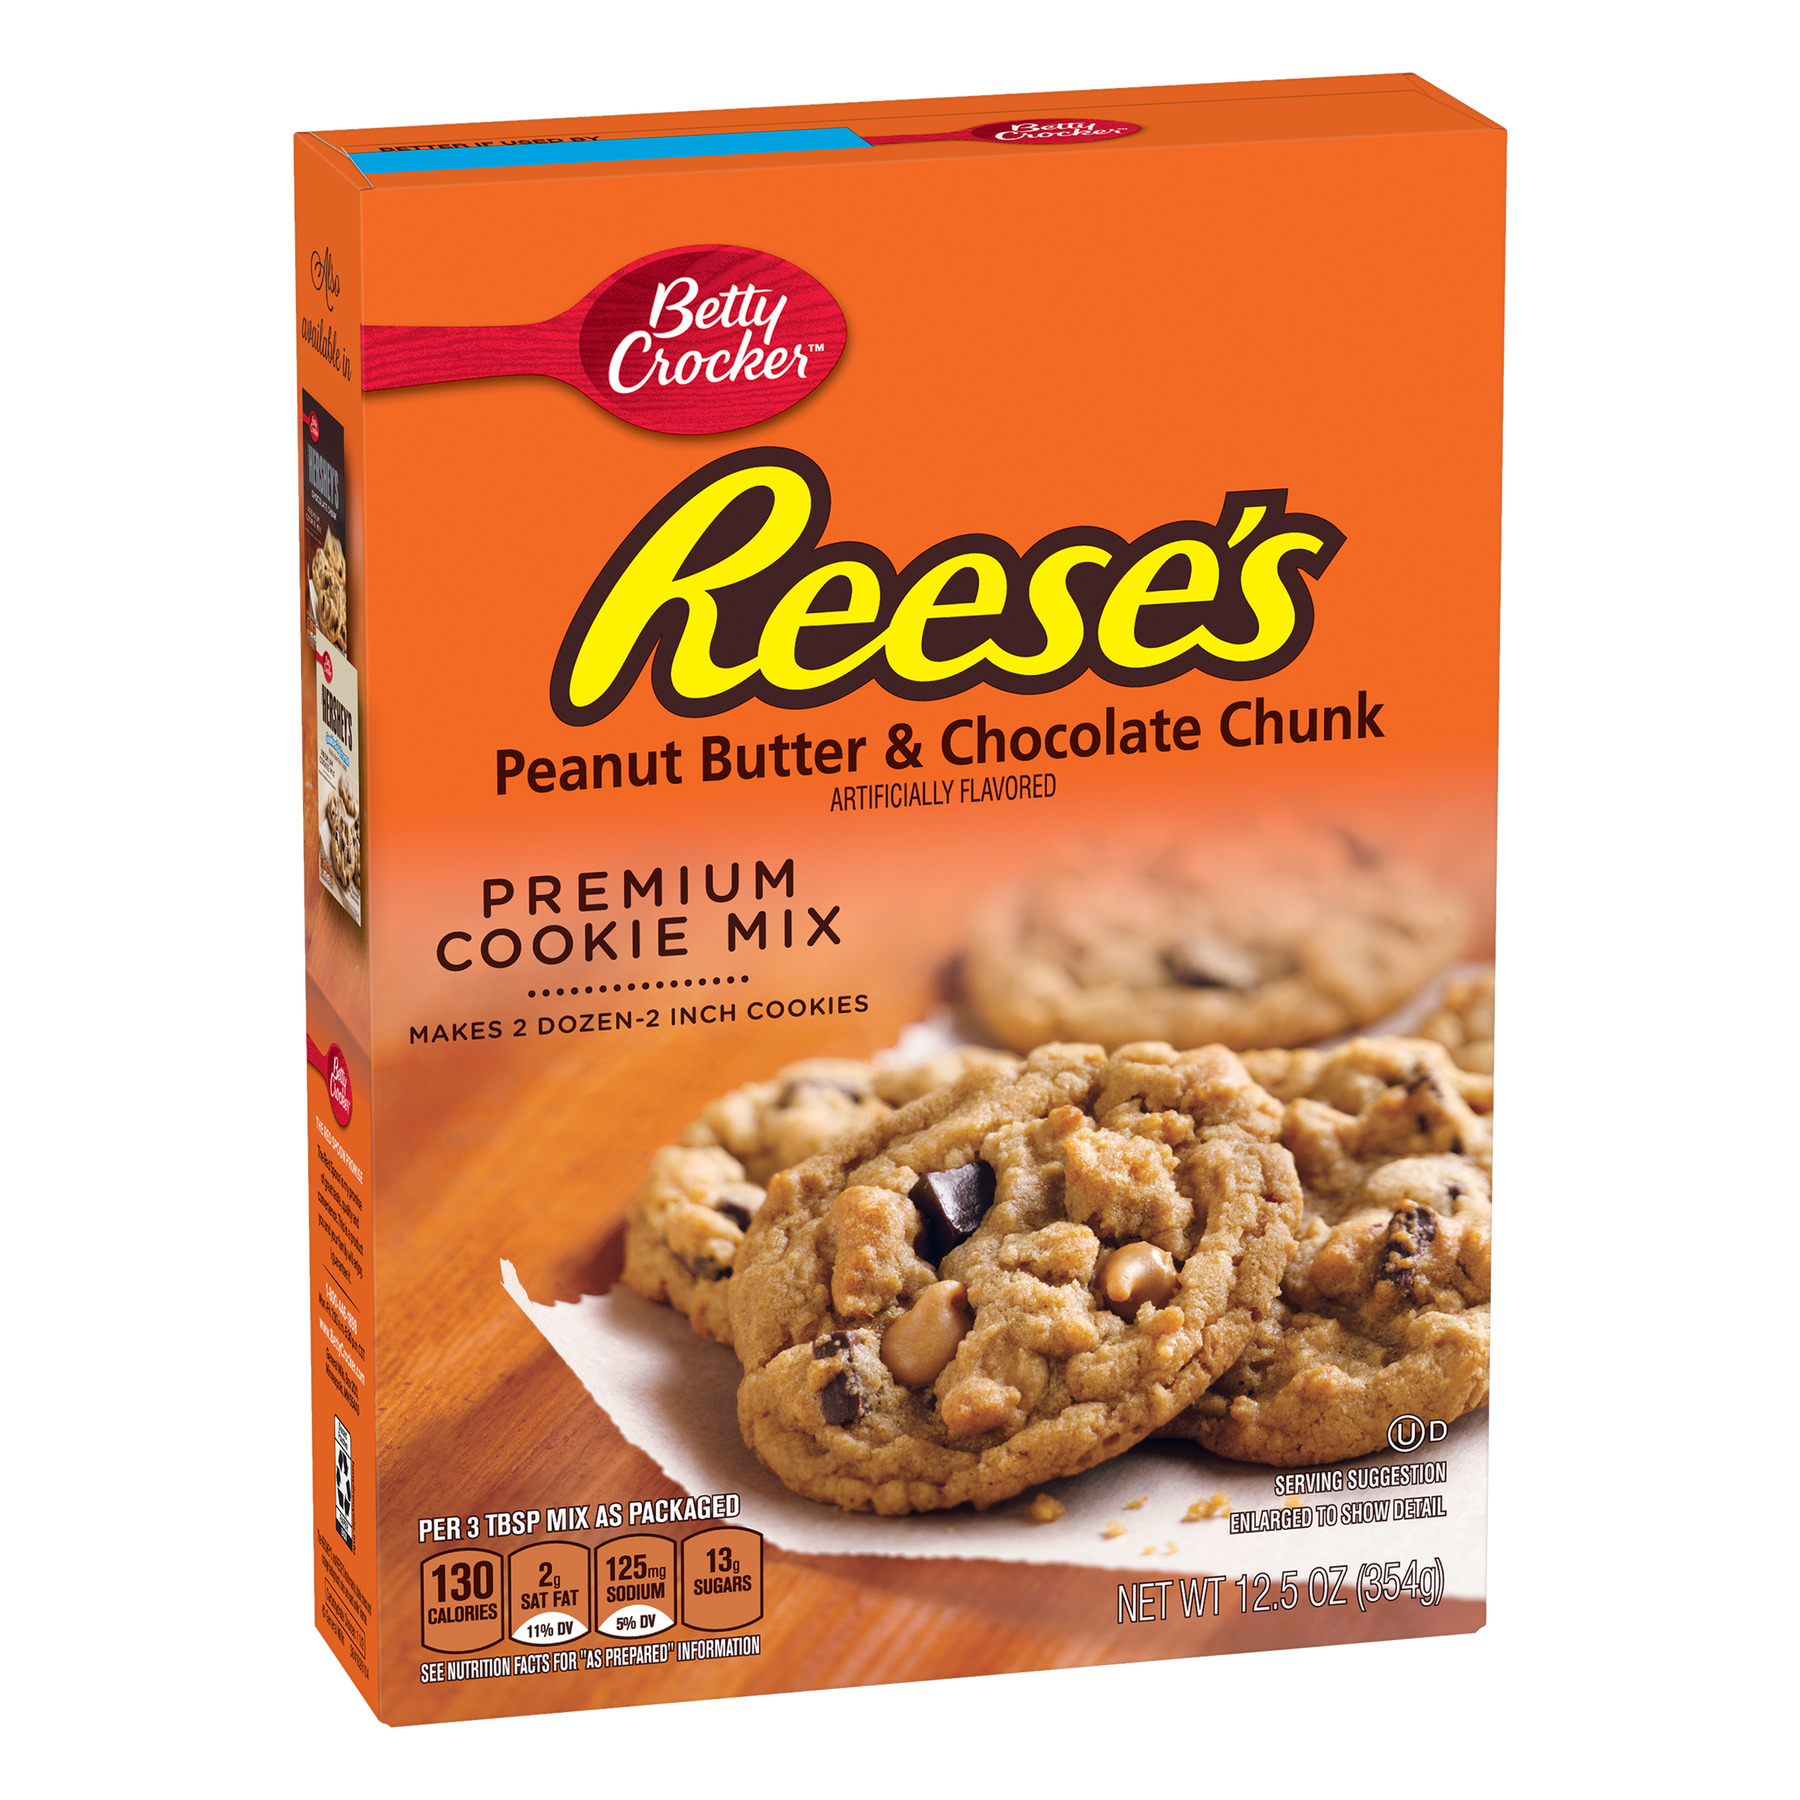 Betty Crocker Reese's Peanut Butter & Choc Chunk Cookie Mix 12.5 oz